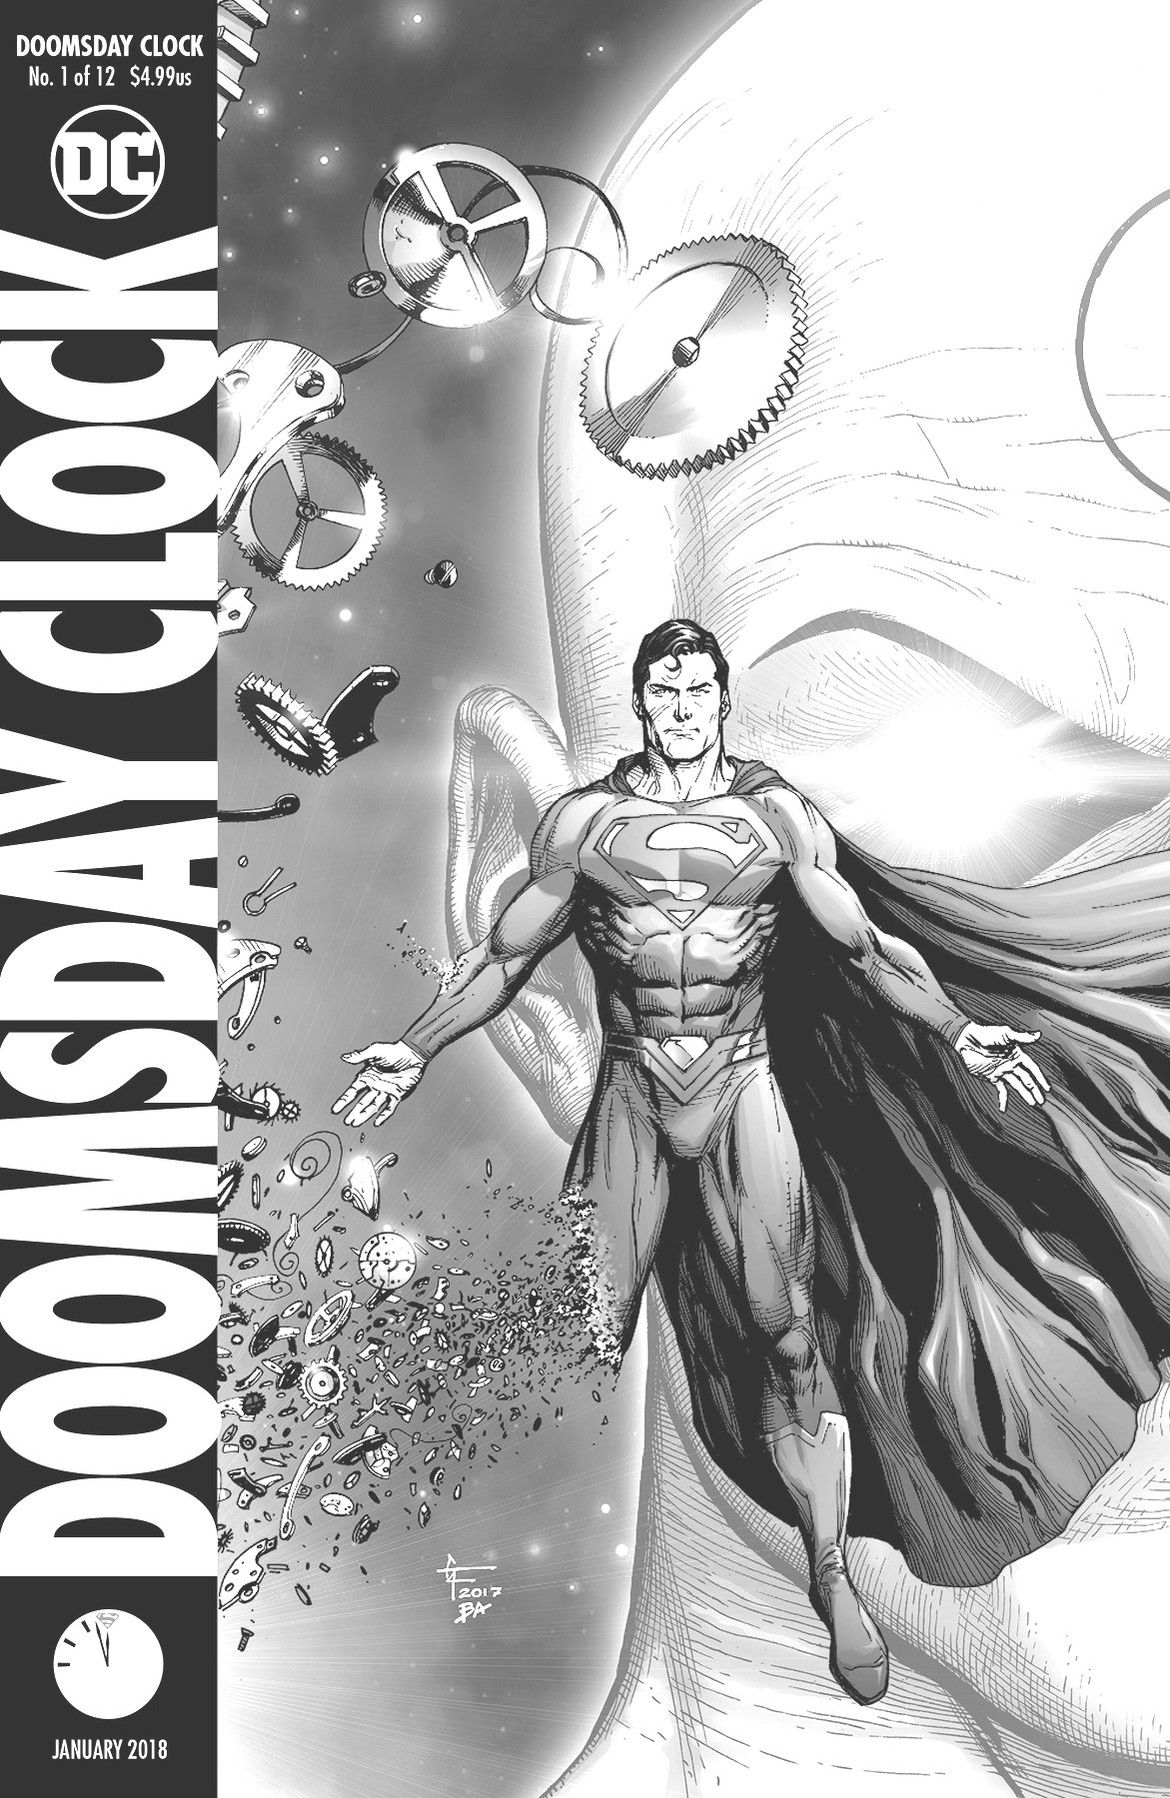 Dc Is Appropriately Dropping Doomsday Clock 1 At Three Minutes To